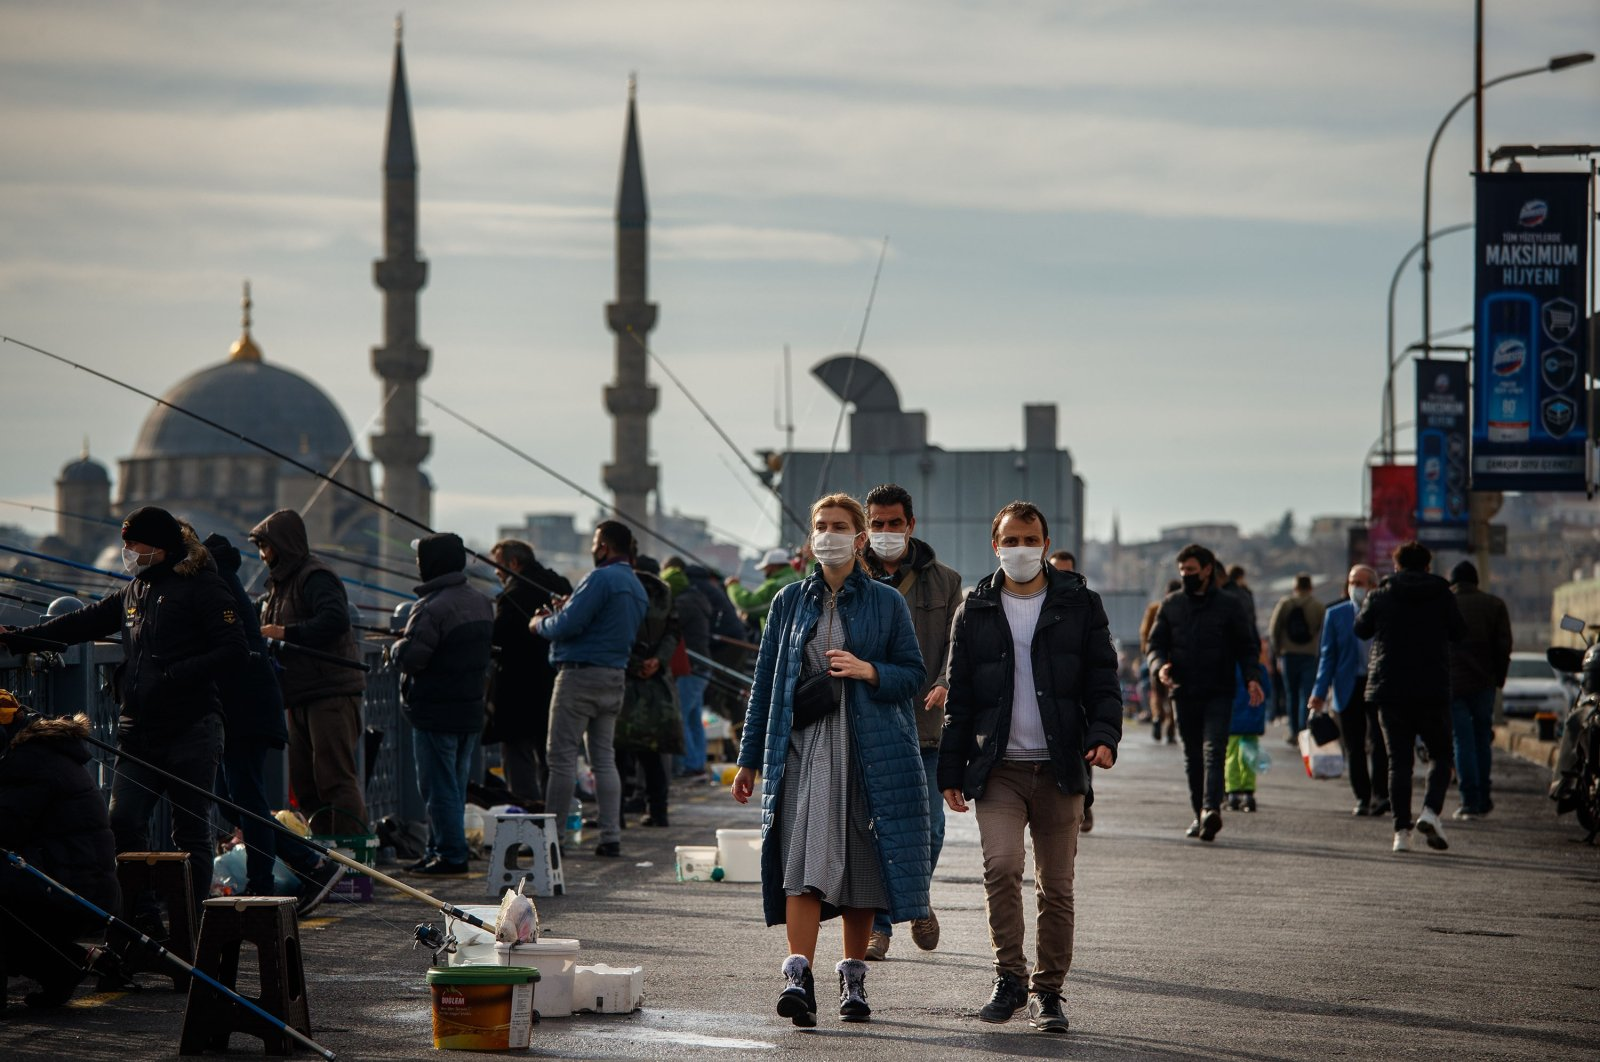 People in masks walk past fishermen during the COVID-19 pandemic, Istanbul, Turkey, Dec. 29, 2020. (Shutterstock Photo)